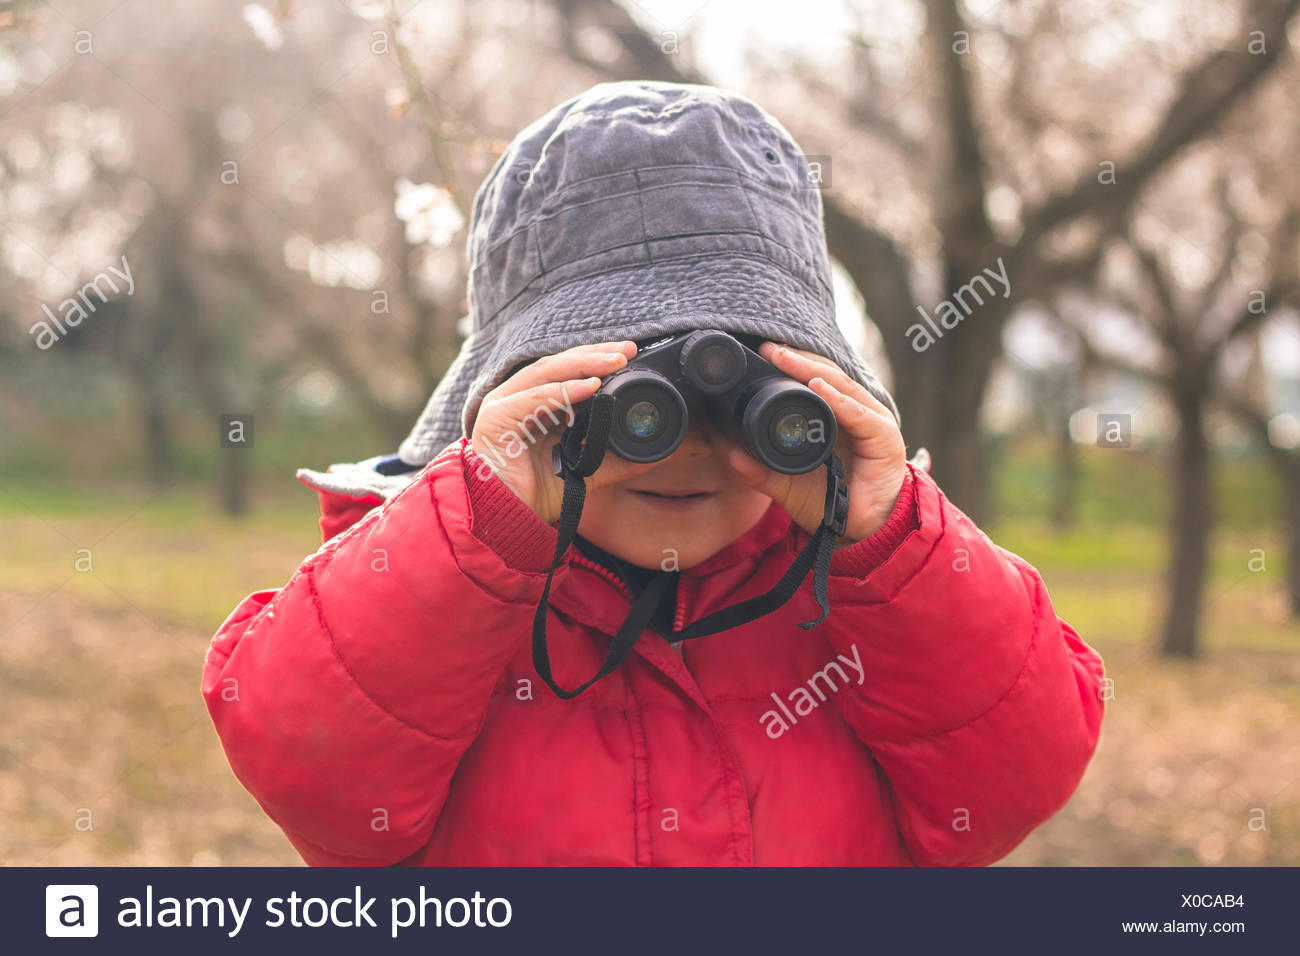 Boy (2-3) looking trough binoculars - Stock Image